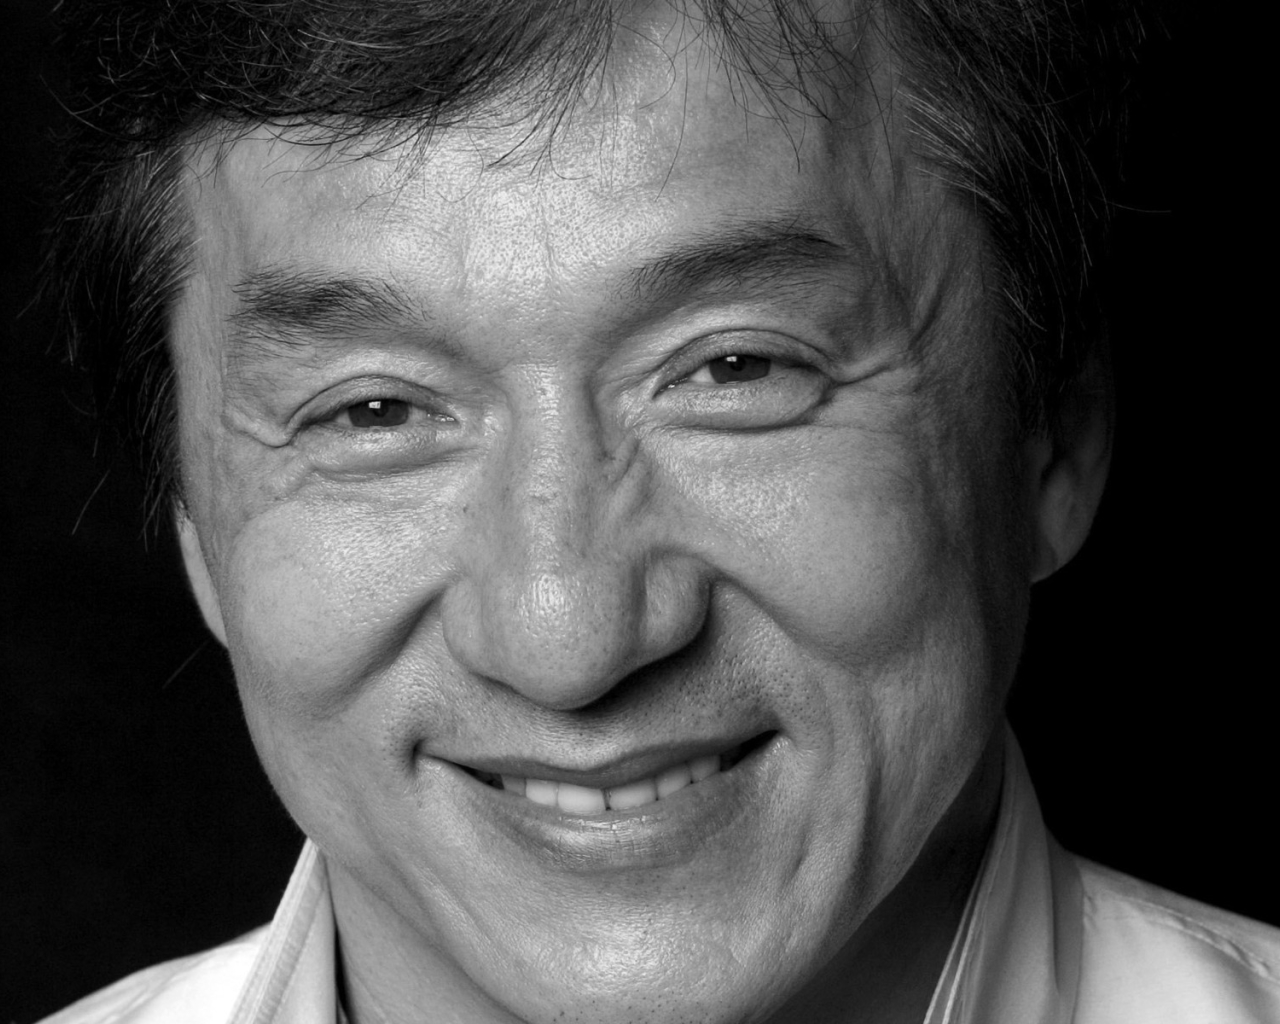 Download jackie chan old age photoshoot 1280x1024 resolution full download in 1280x1024 voltagebd Choice Image